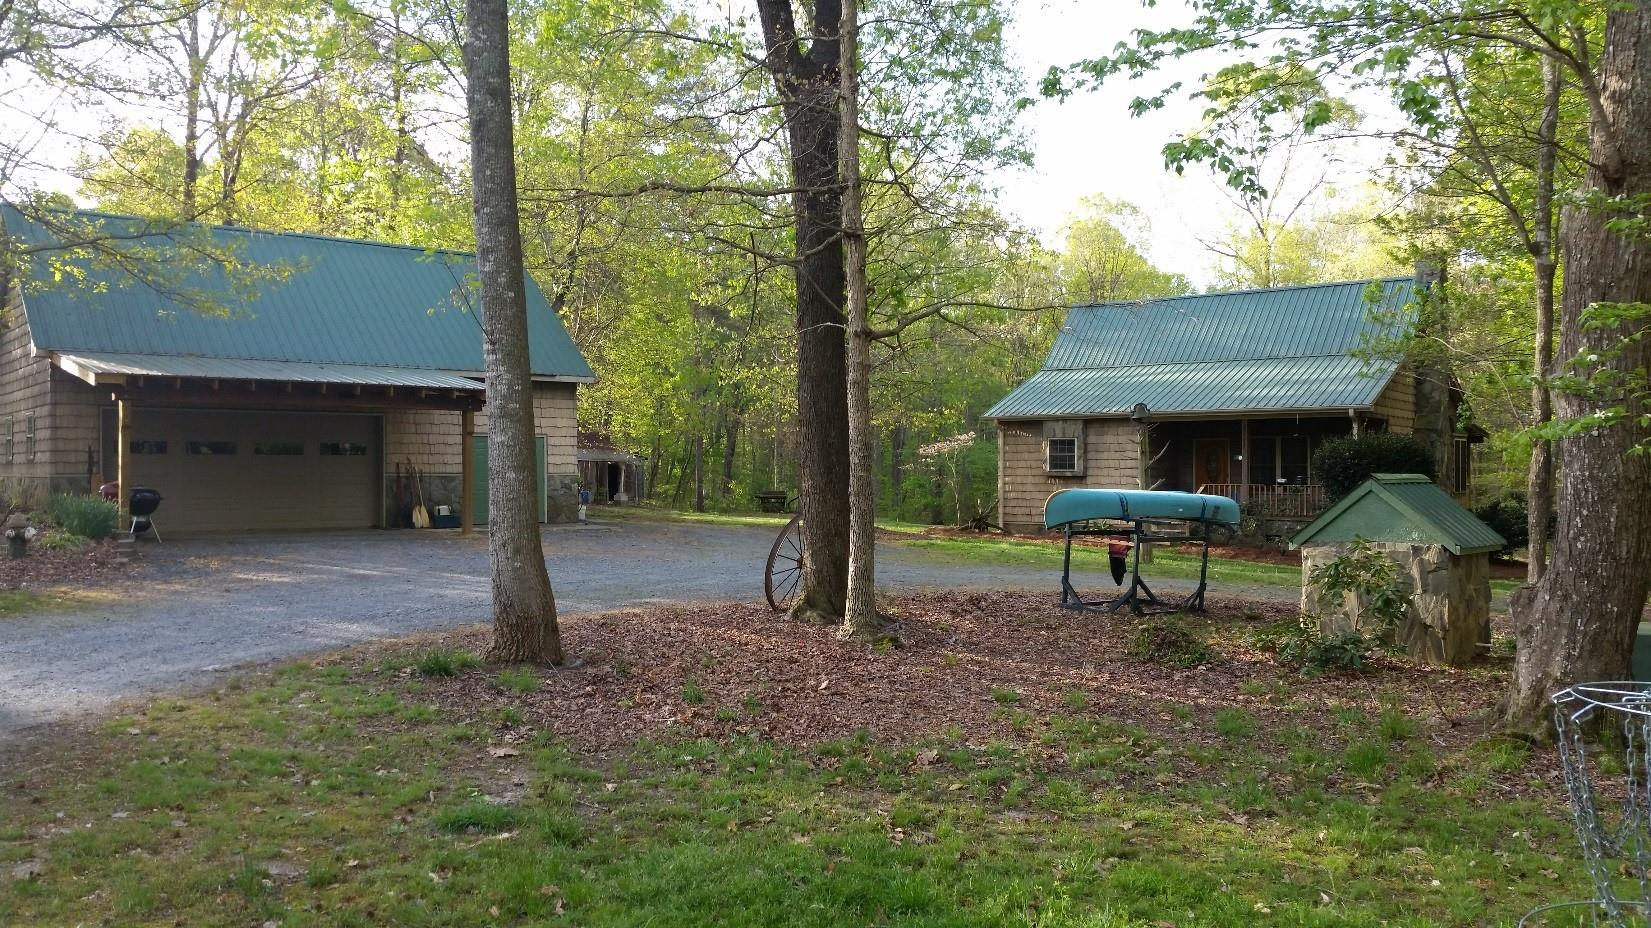 randolph county rental, farm for rent in randolph county, cabin in randolph county for rent, 2 br in randleman for rent